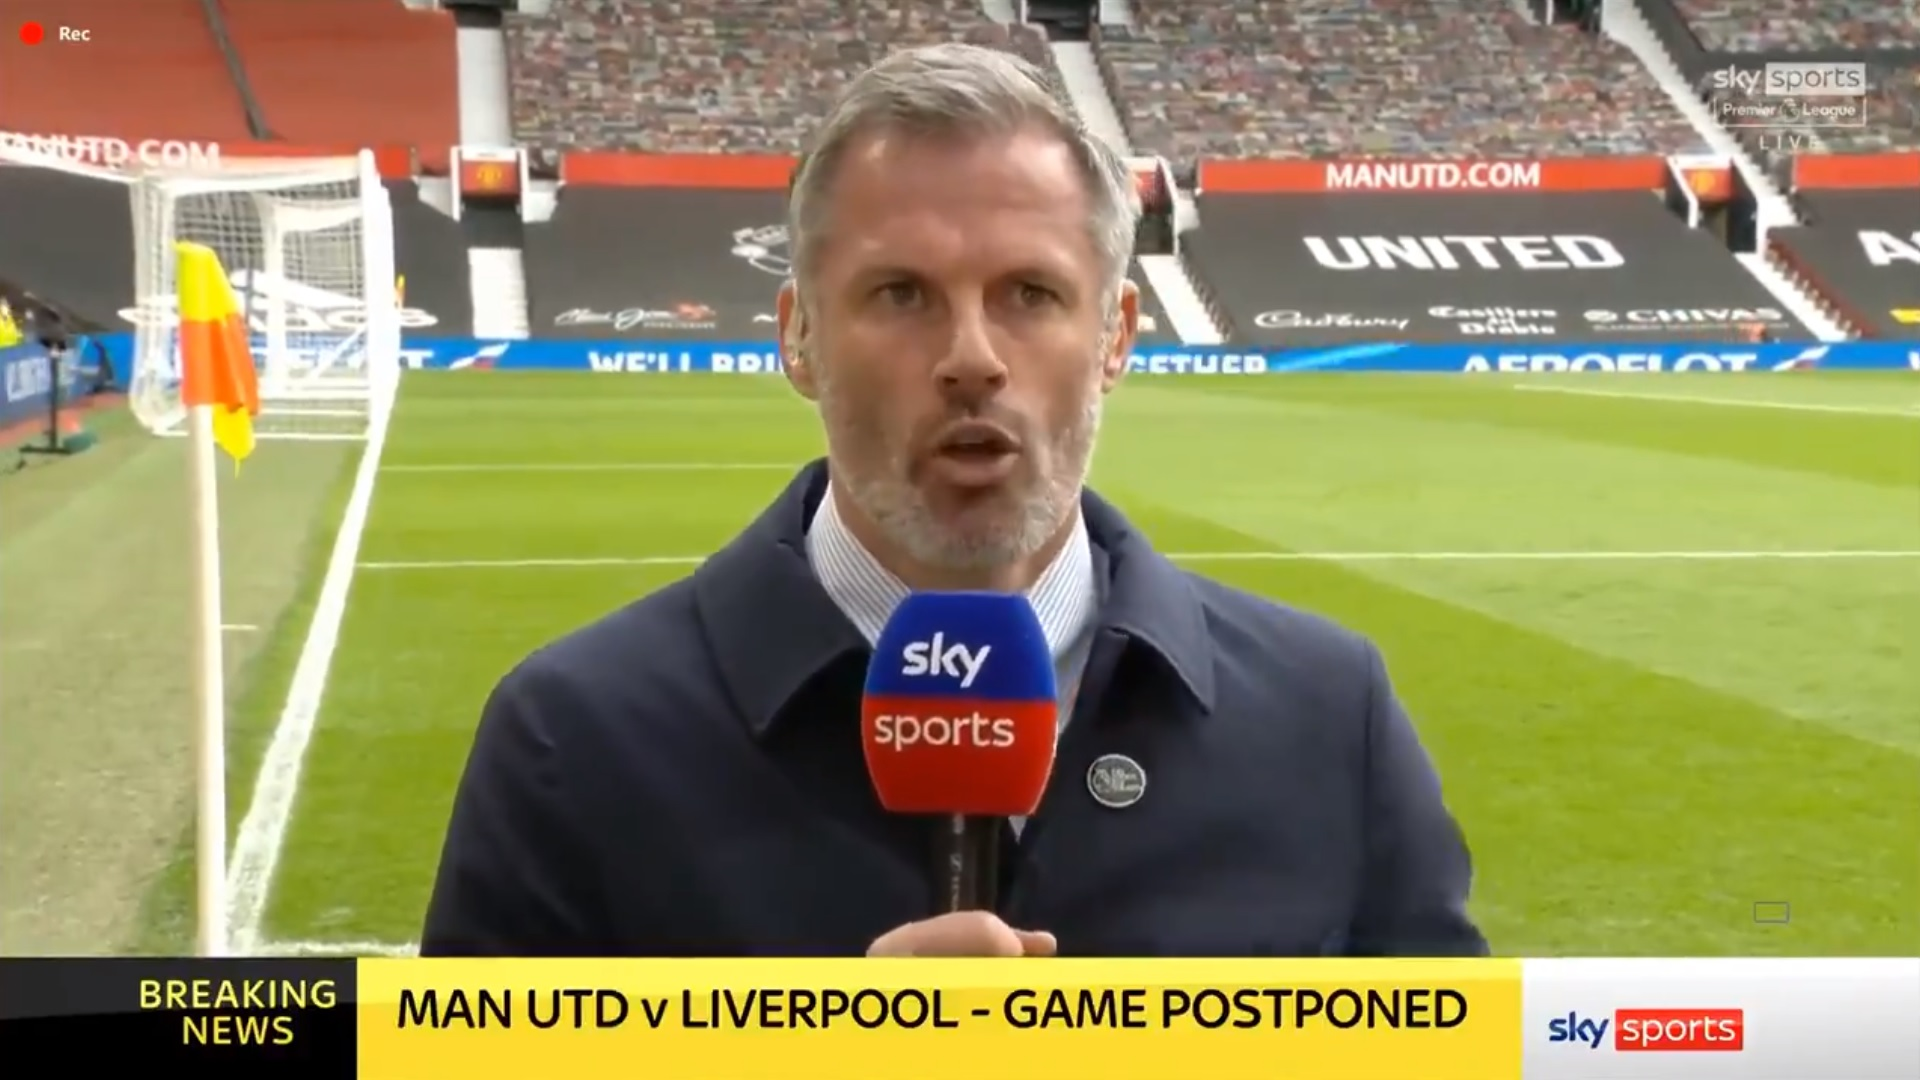 Jamie Carragher compares Manchester United protest to a 'night out with mates'